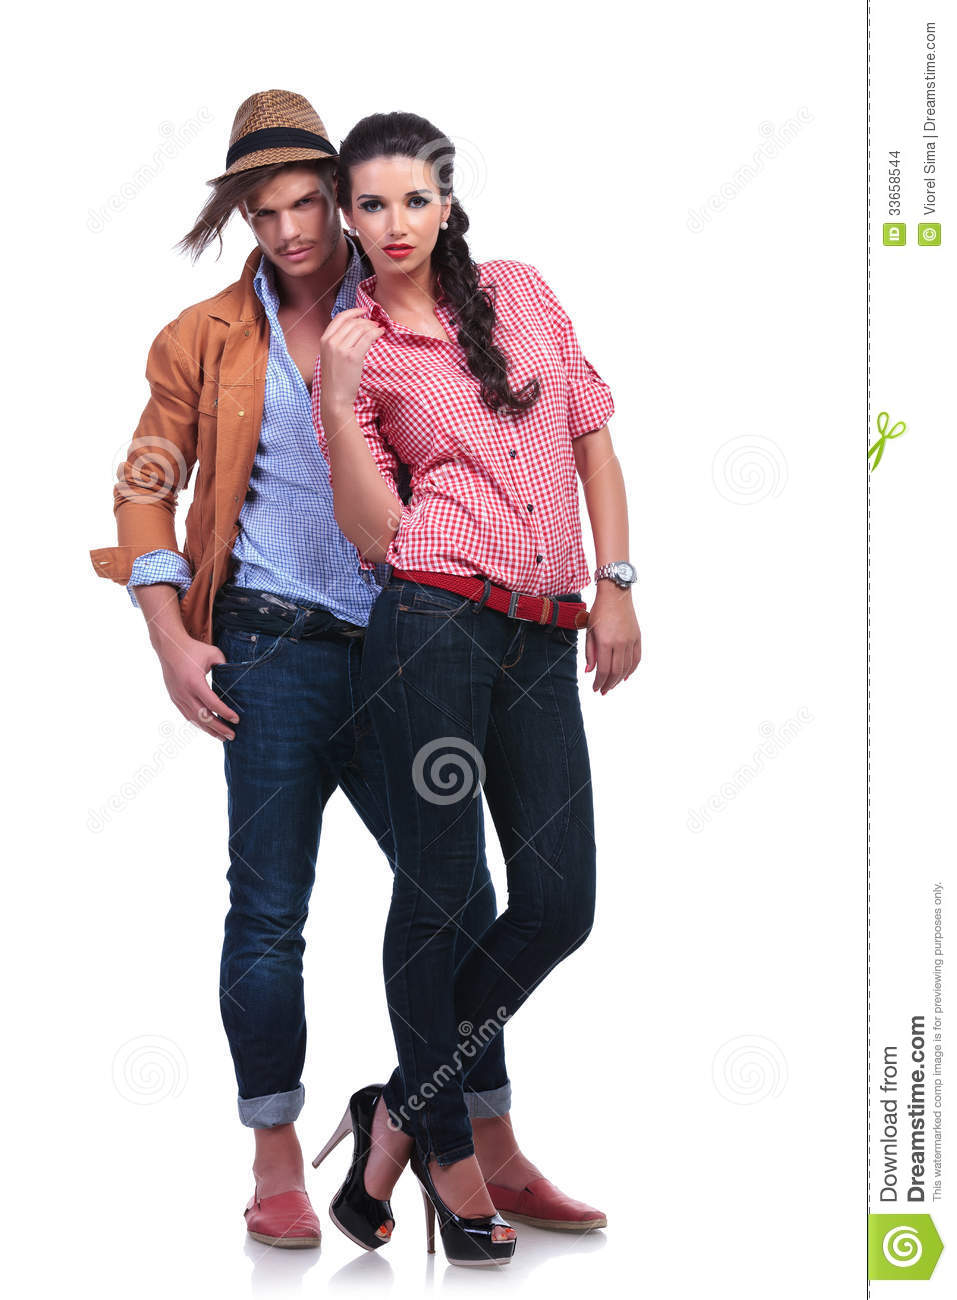 Something casual teen couple standing